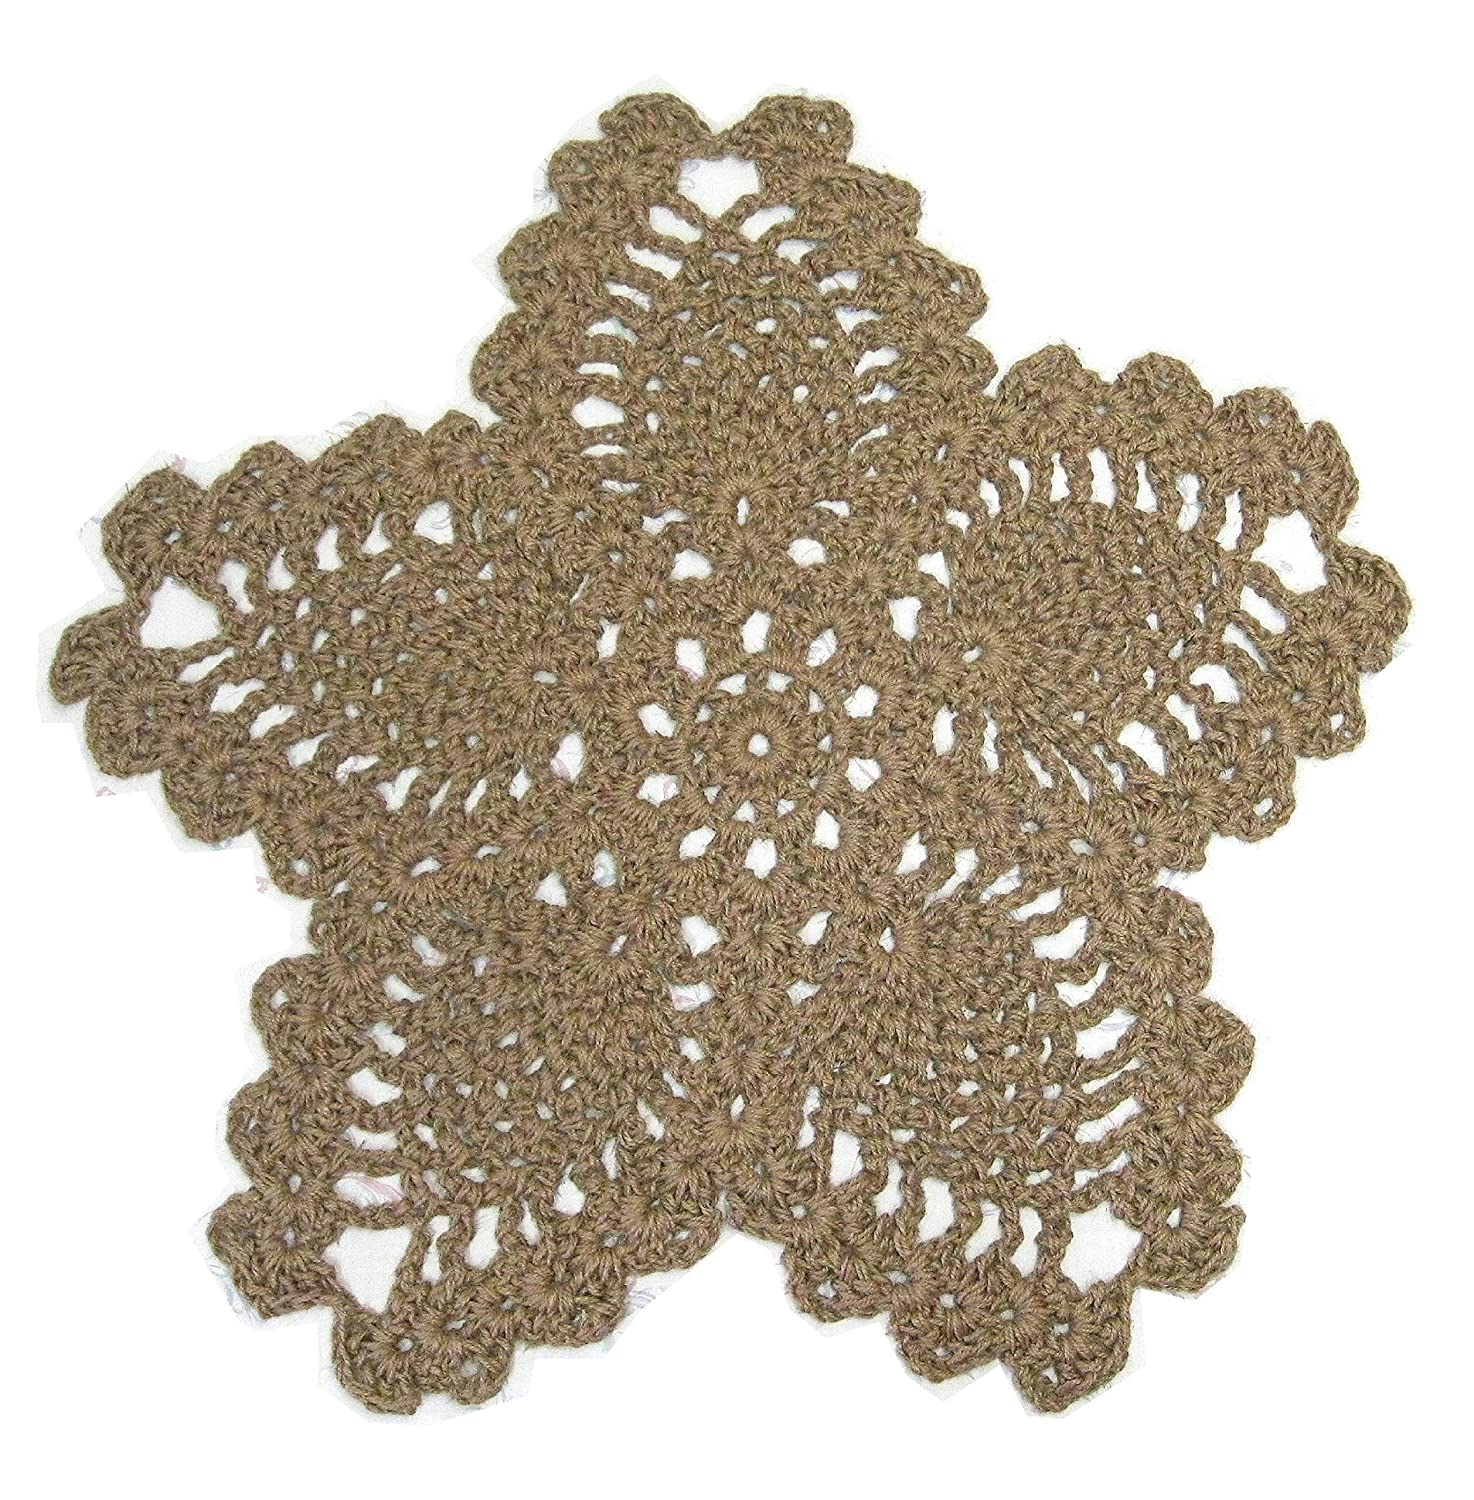 Amazon Flower Or Star Jute Area Rug Made To Order Natural